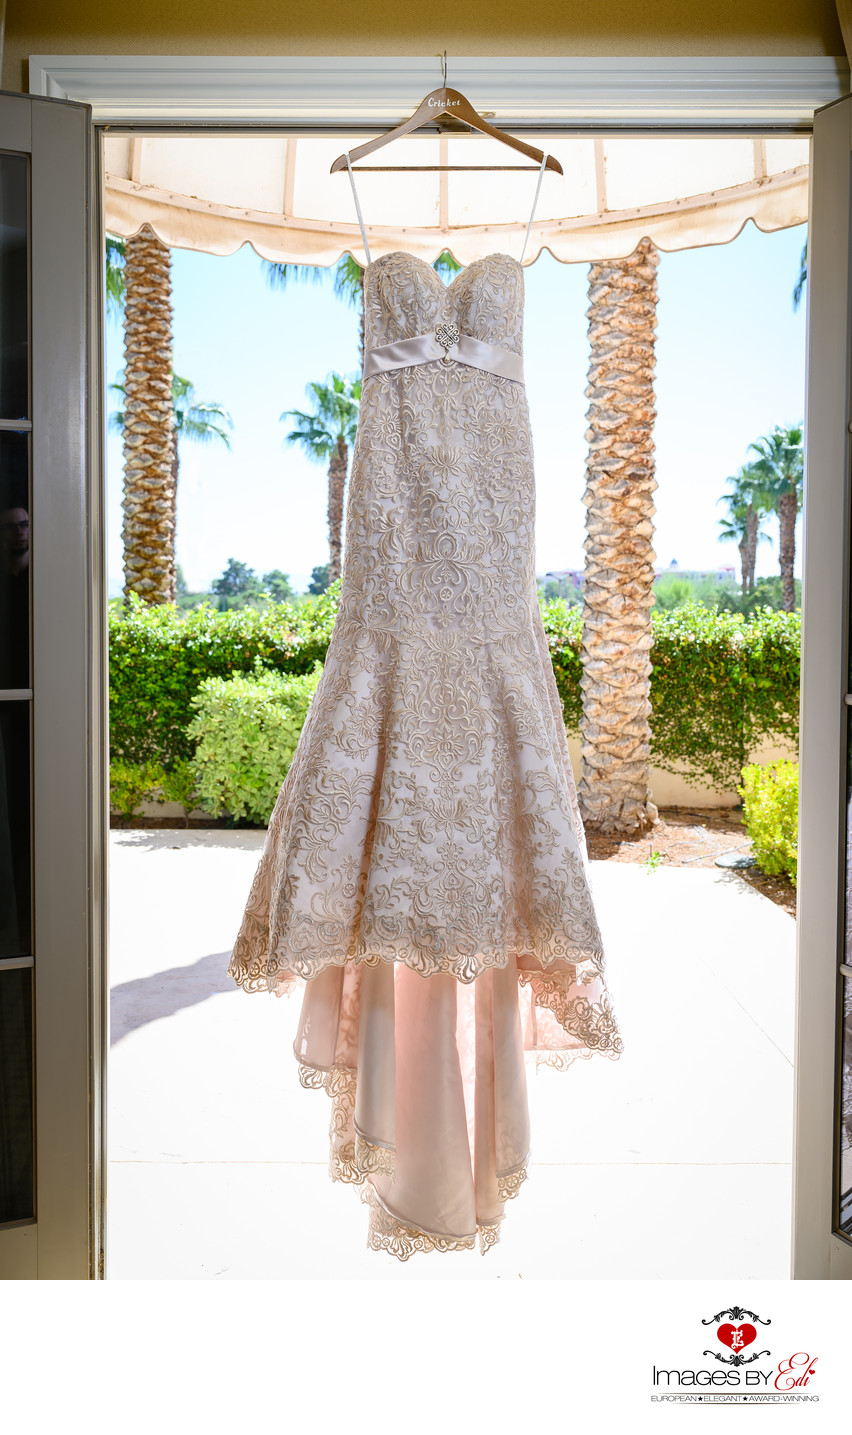 JW Marriott Las Vegas wedding Photo of the wedding dress